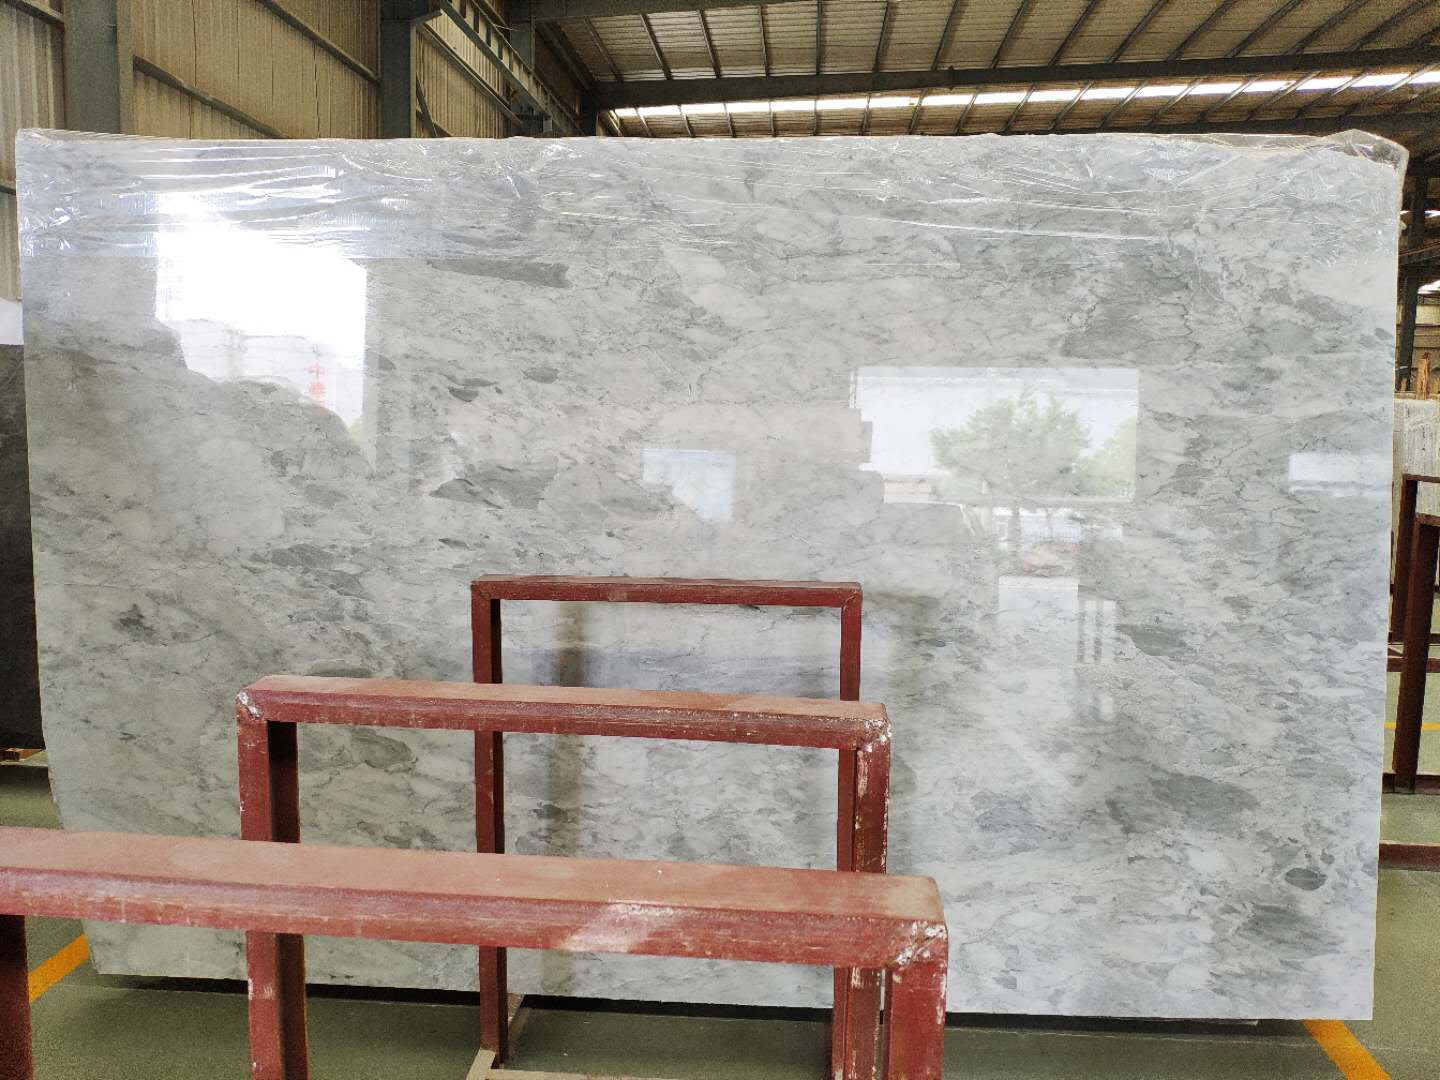 Silver Shadow Marble slab Grey Polished Marble Flooring Tile